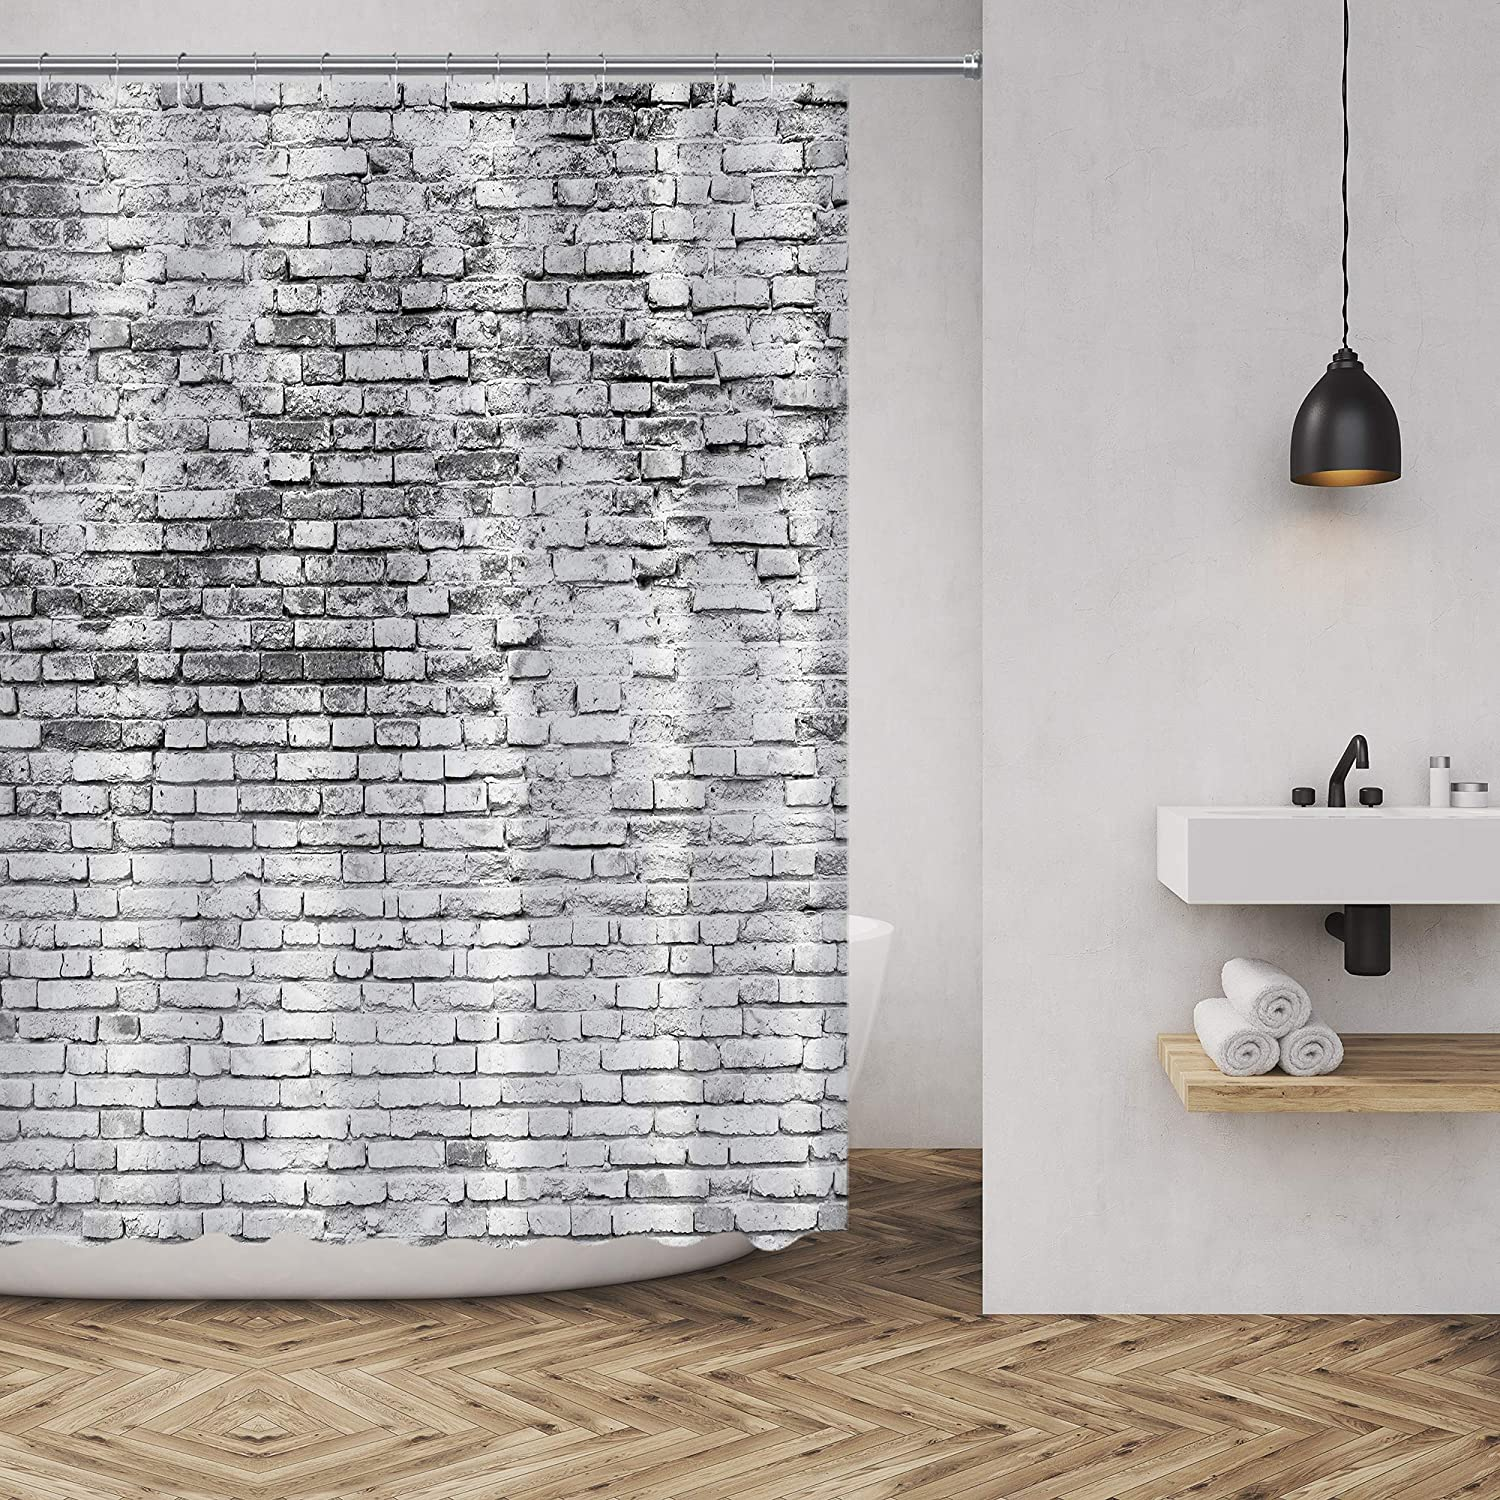 Amazon Com Muatoo Shower Curtain Cracked White Wall Background Graphics Prints Bathroom Decor Set With Hooks 72 X72 Inches White Home Kitchen